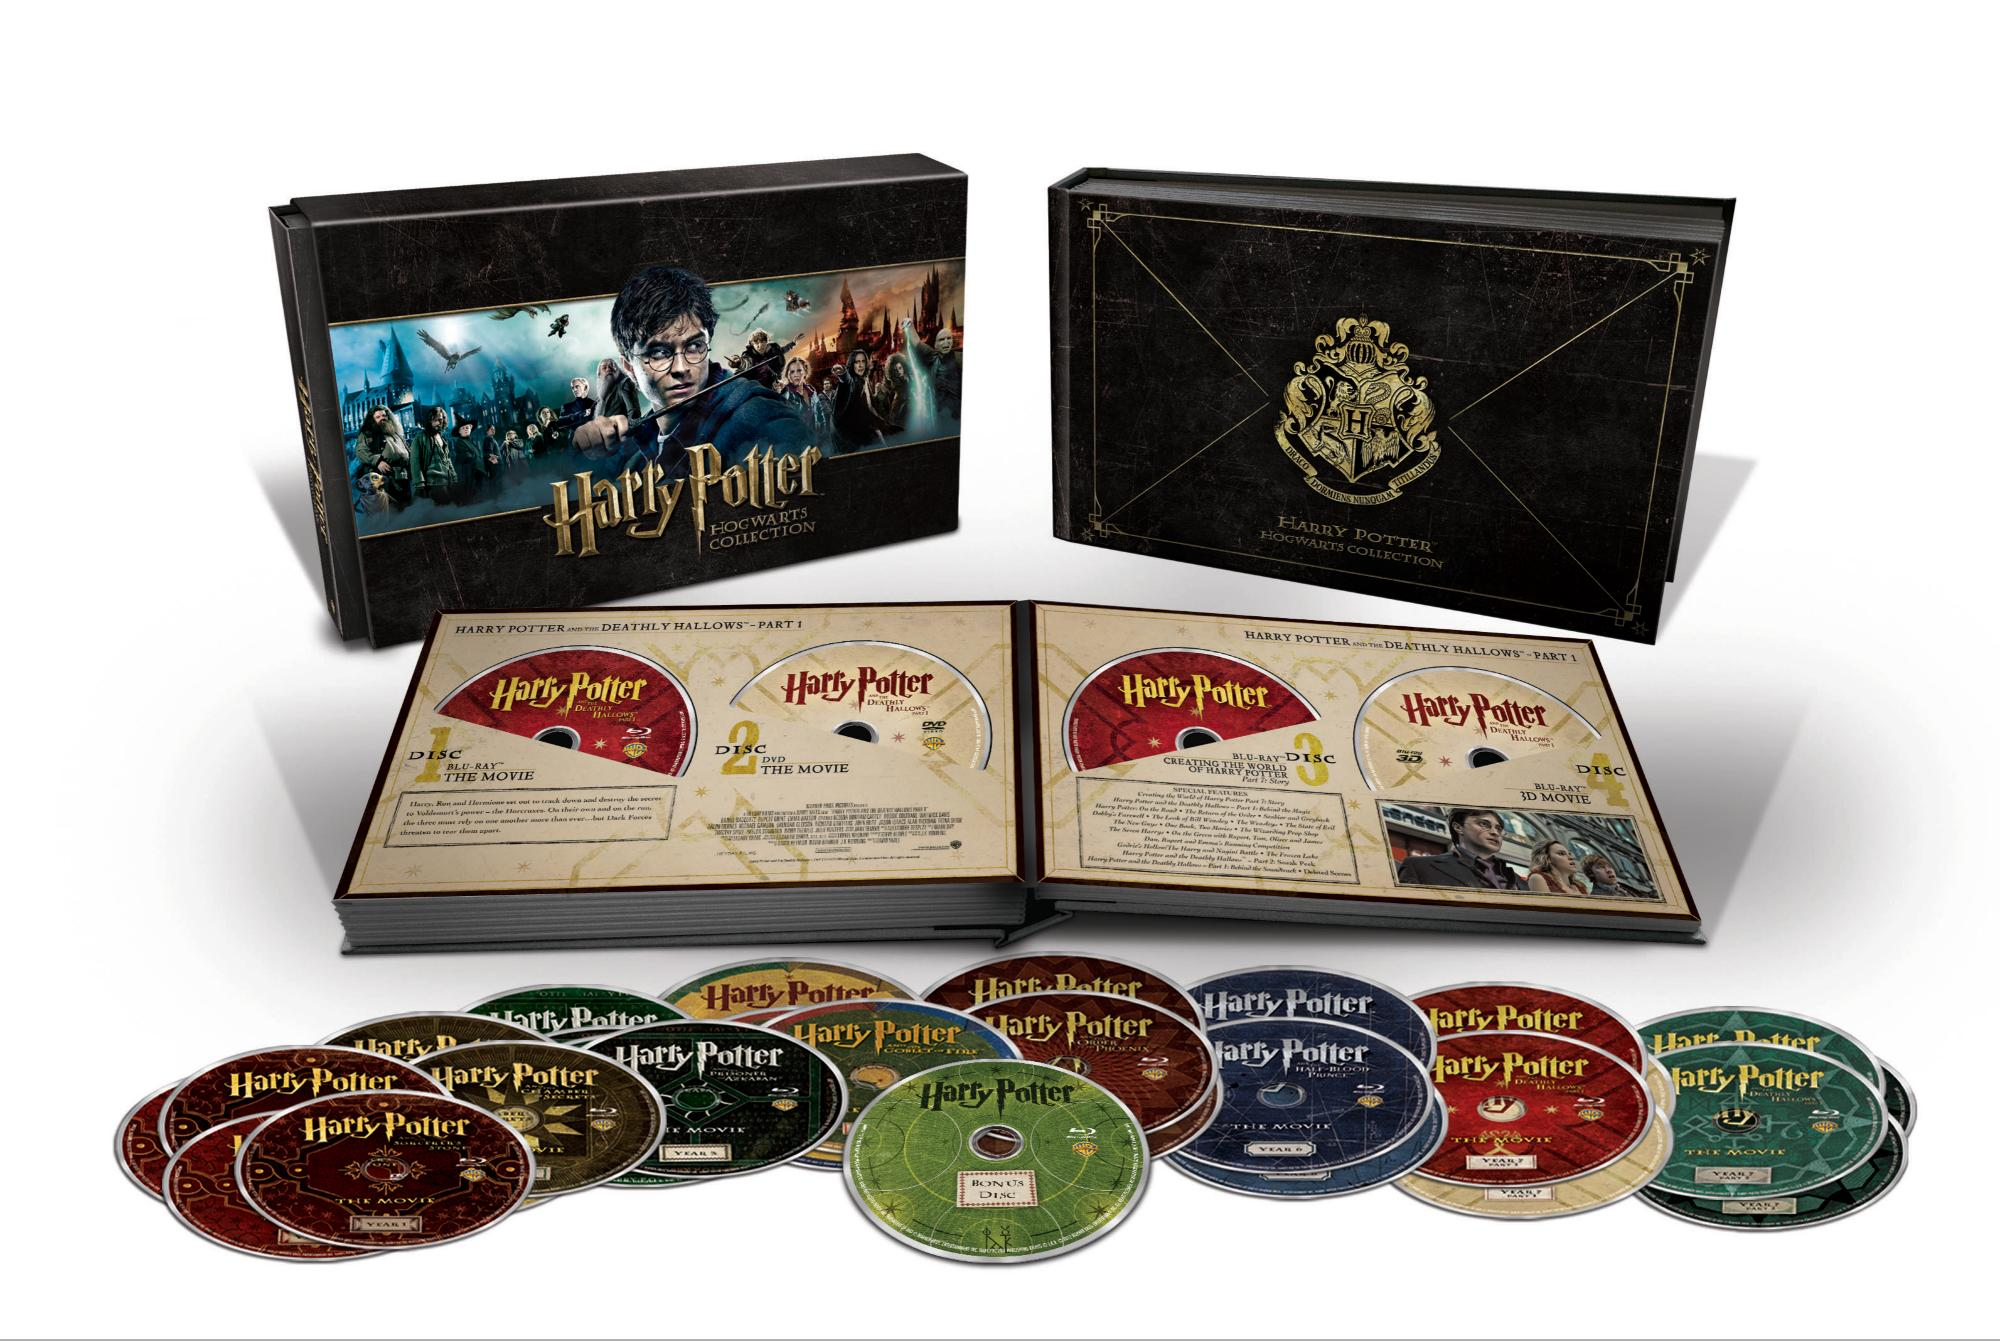 New 31 Disc Harry Potter Hogwarts Collection Out Soon